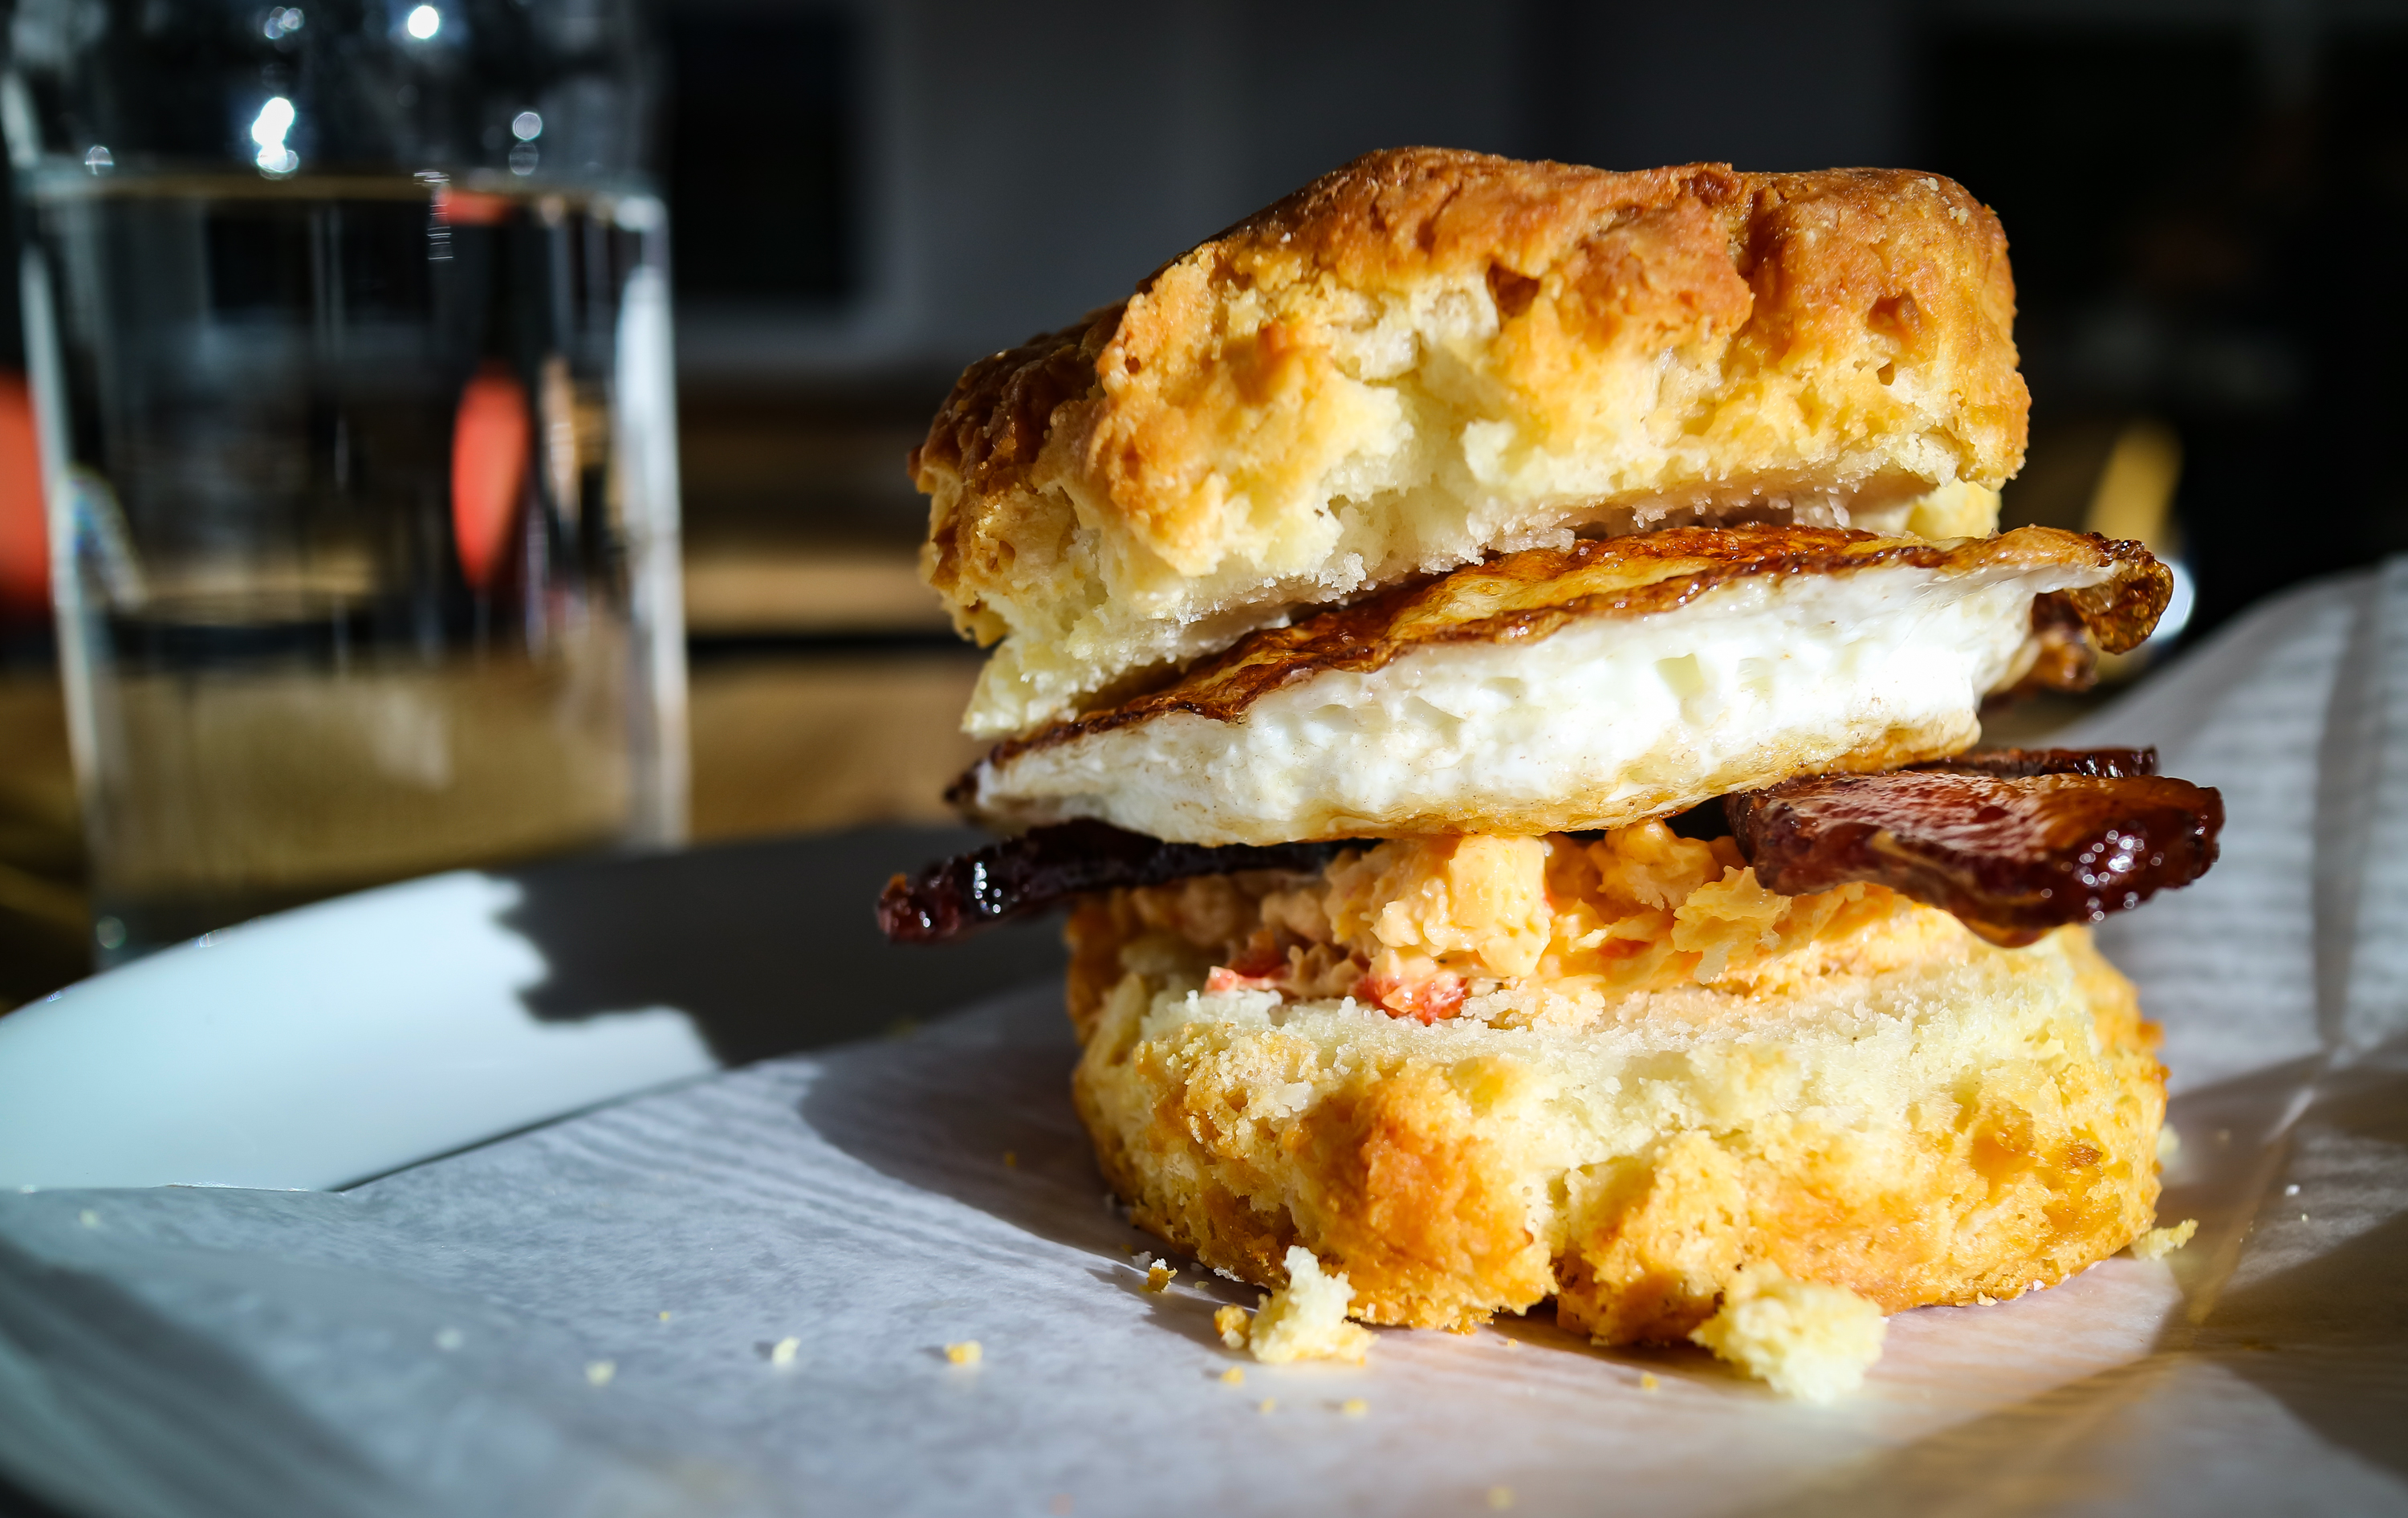 The biscuit sandwich at 8 Arm.